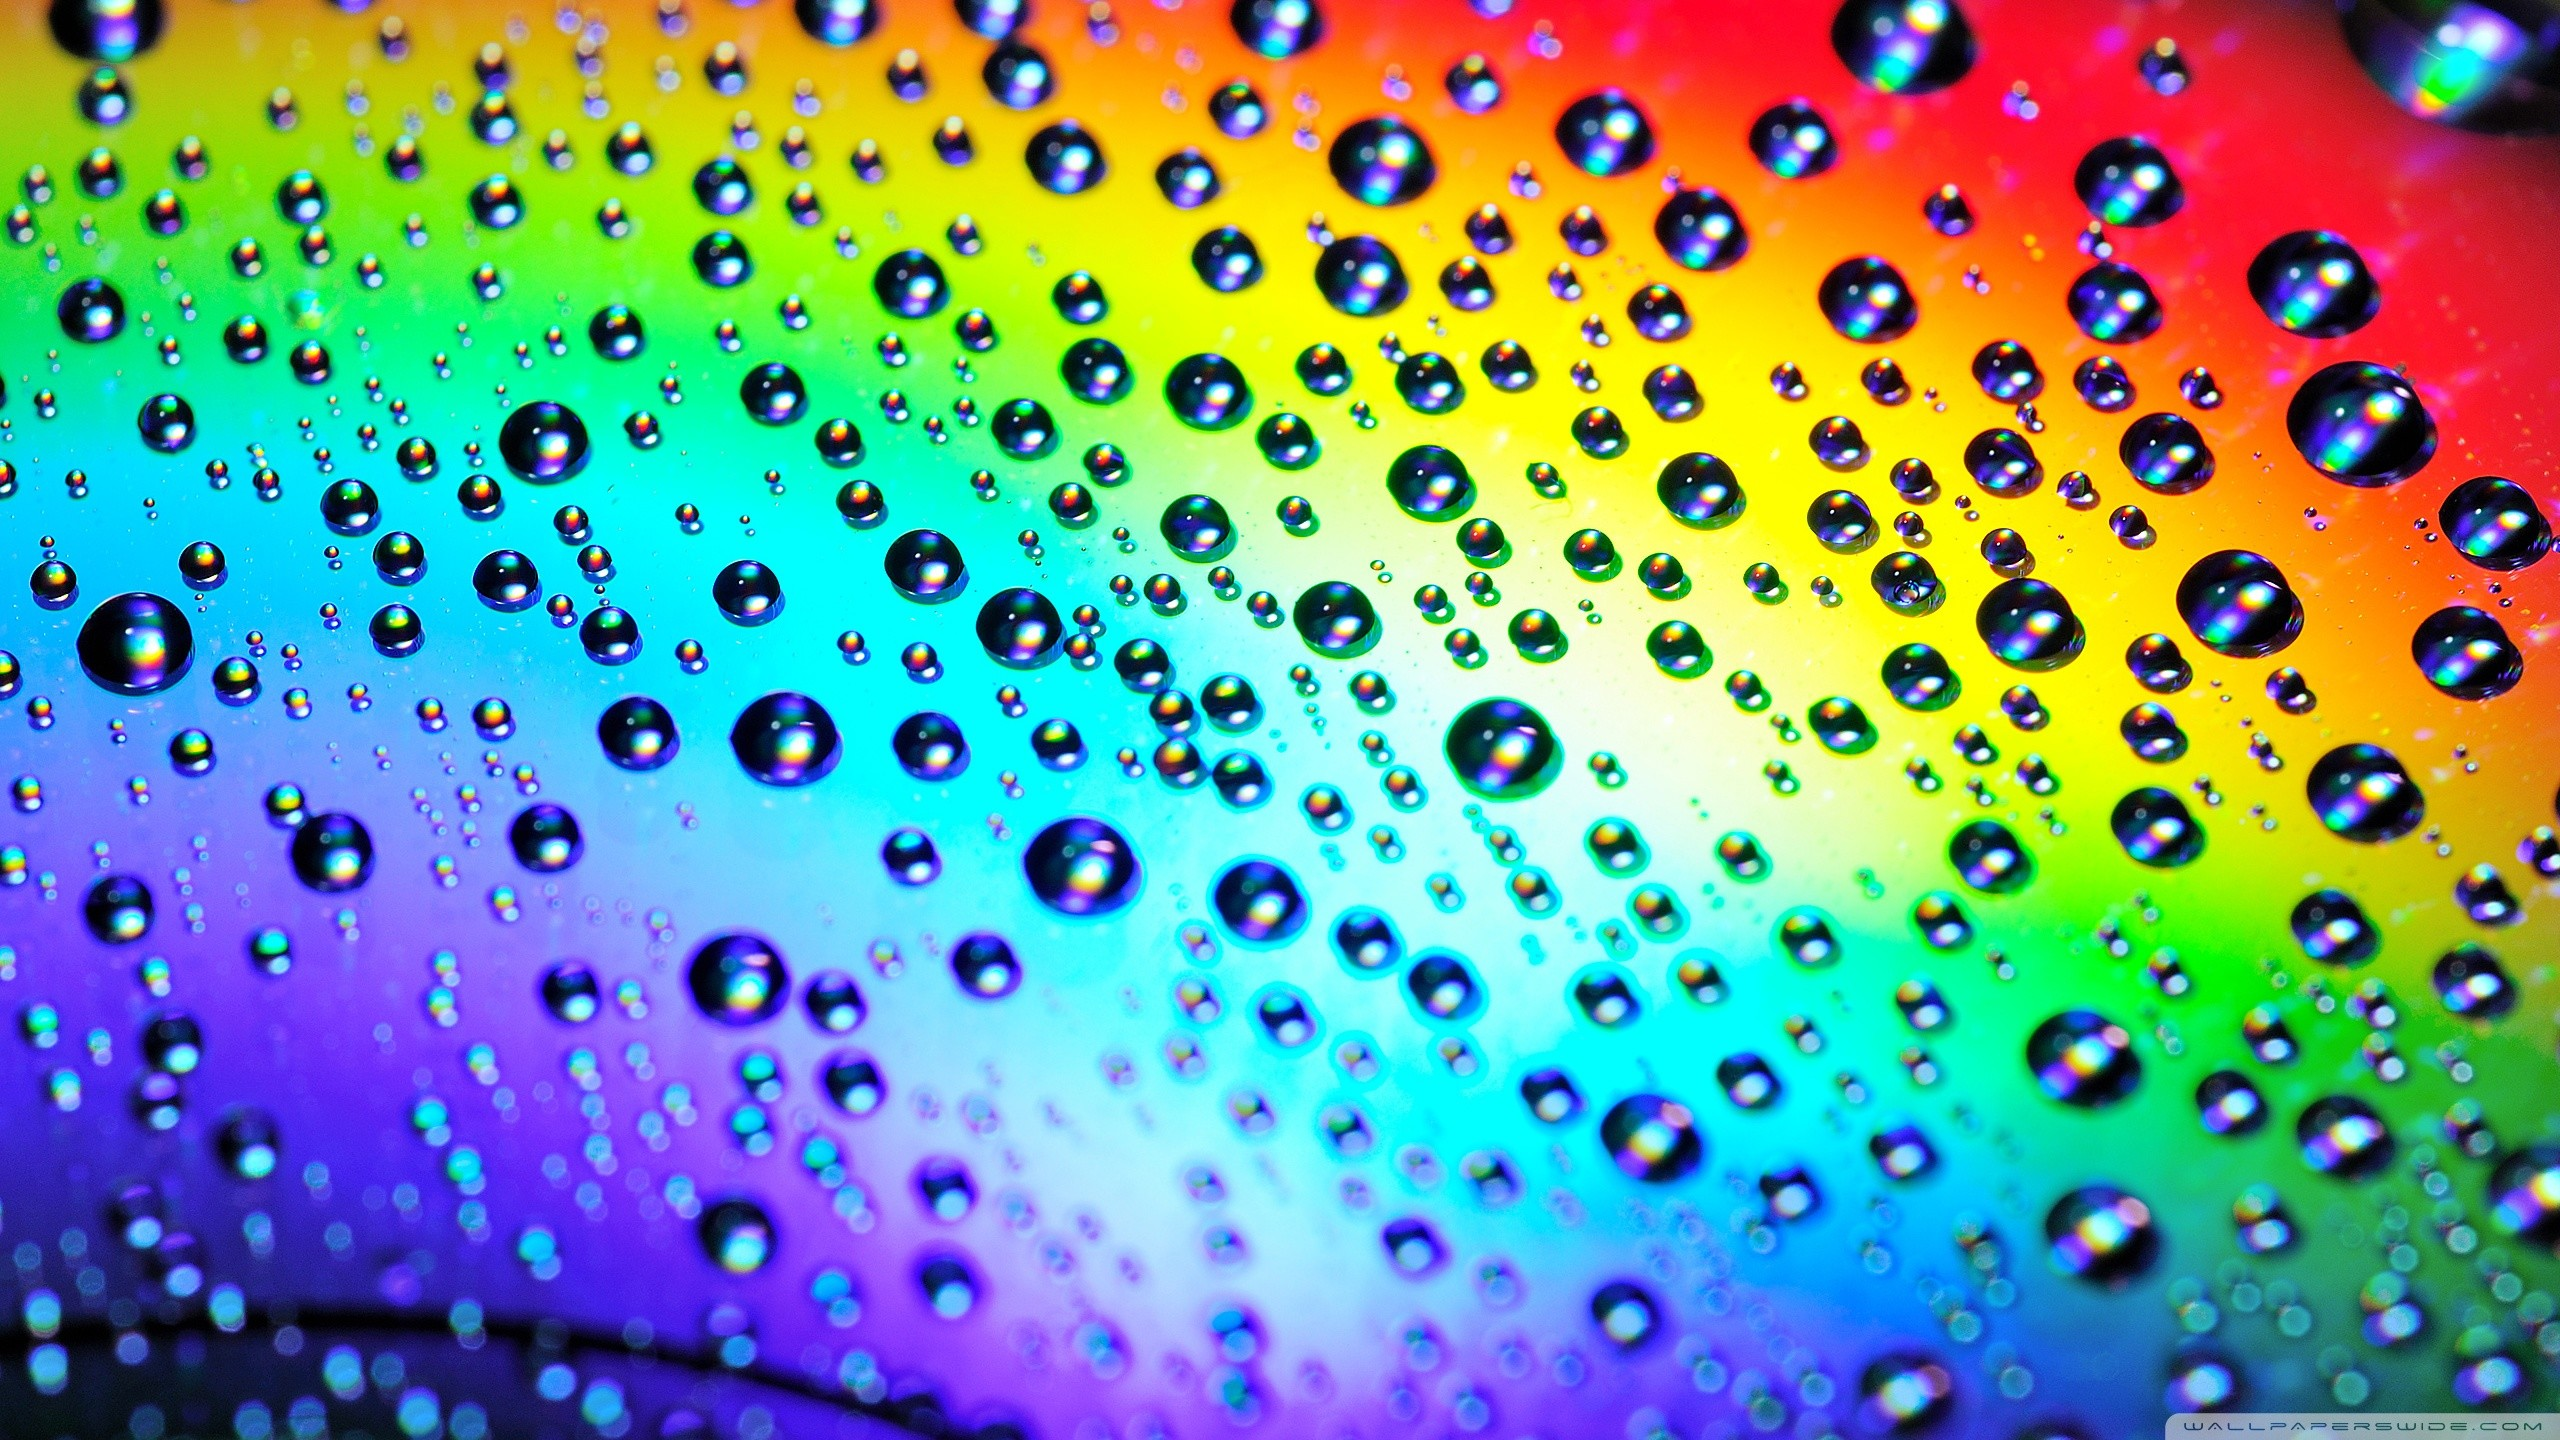 Res: 2560x1440, 8007/WVNI Raindrop Backgrounds